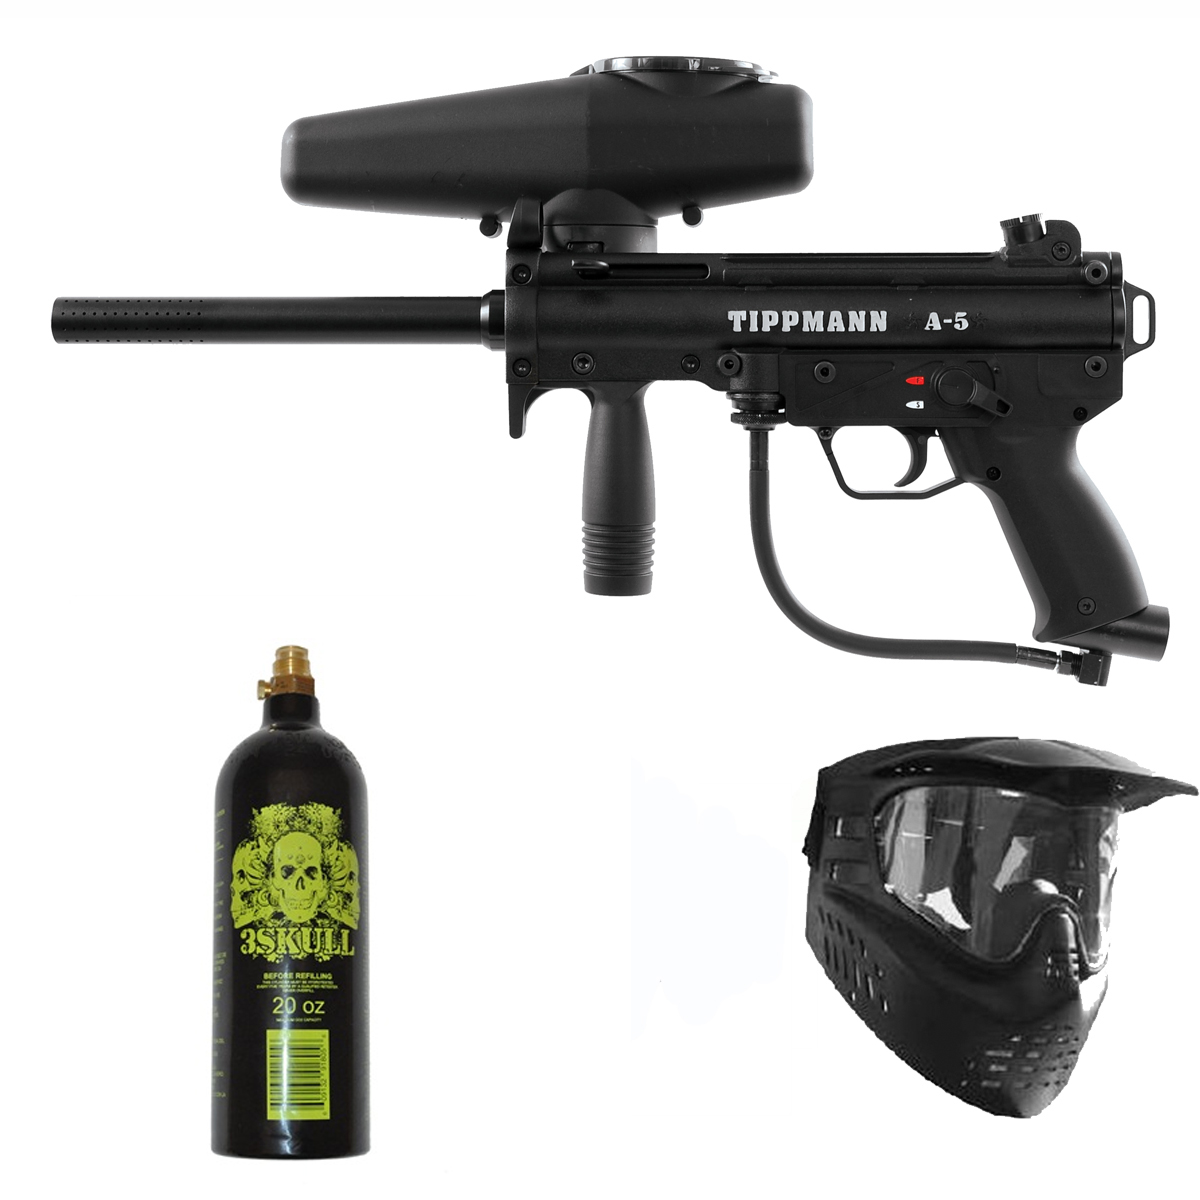 Click here to buy Tippmann A-5 Paintball Marker Gun 3Skull Package.